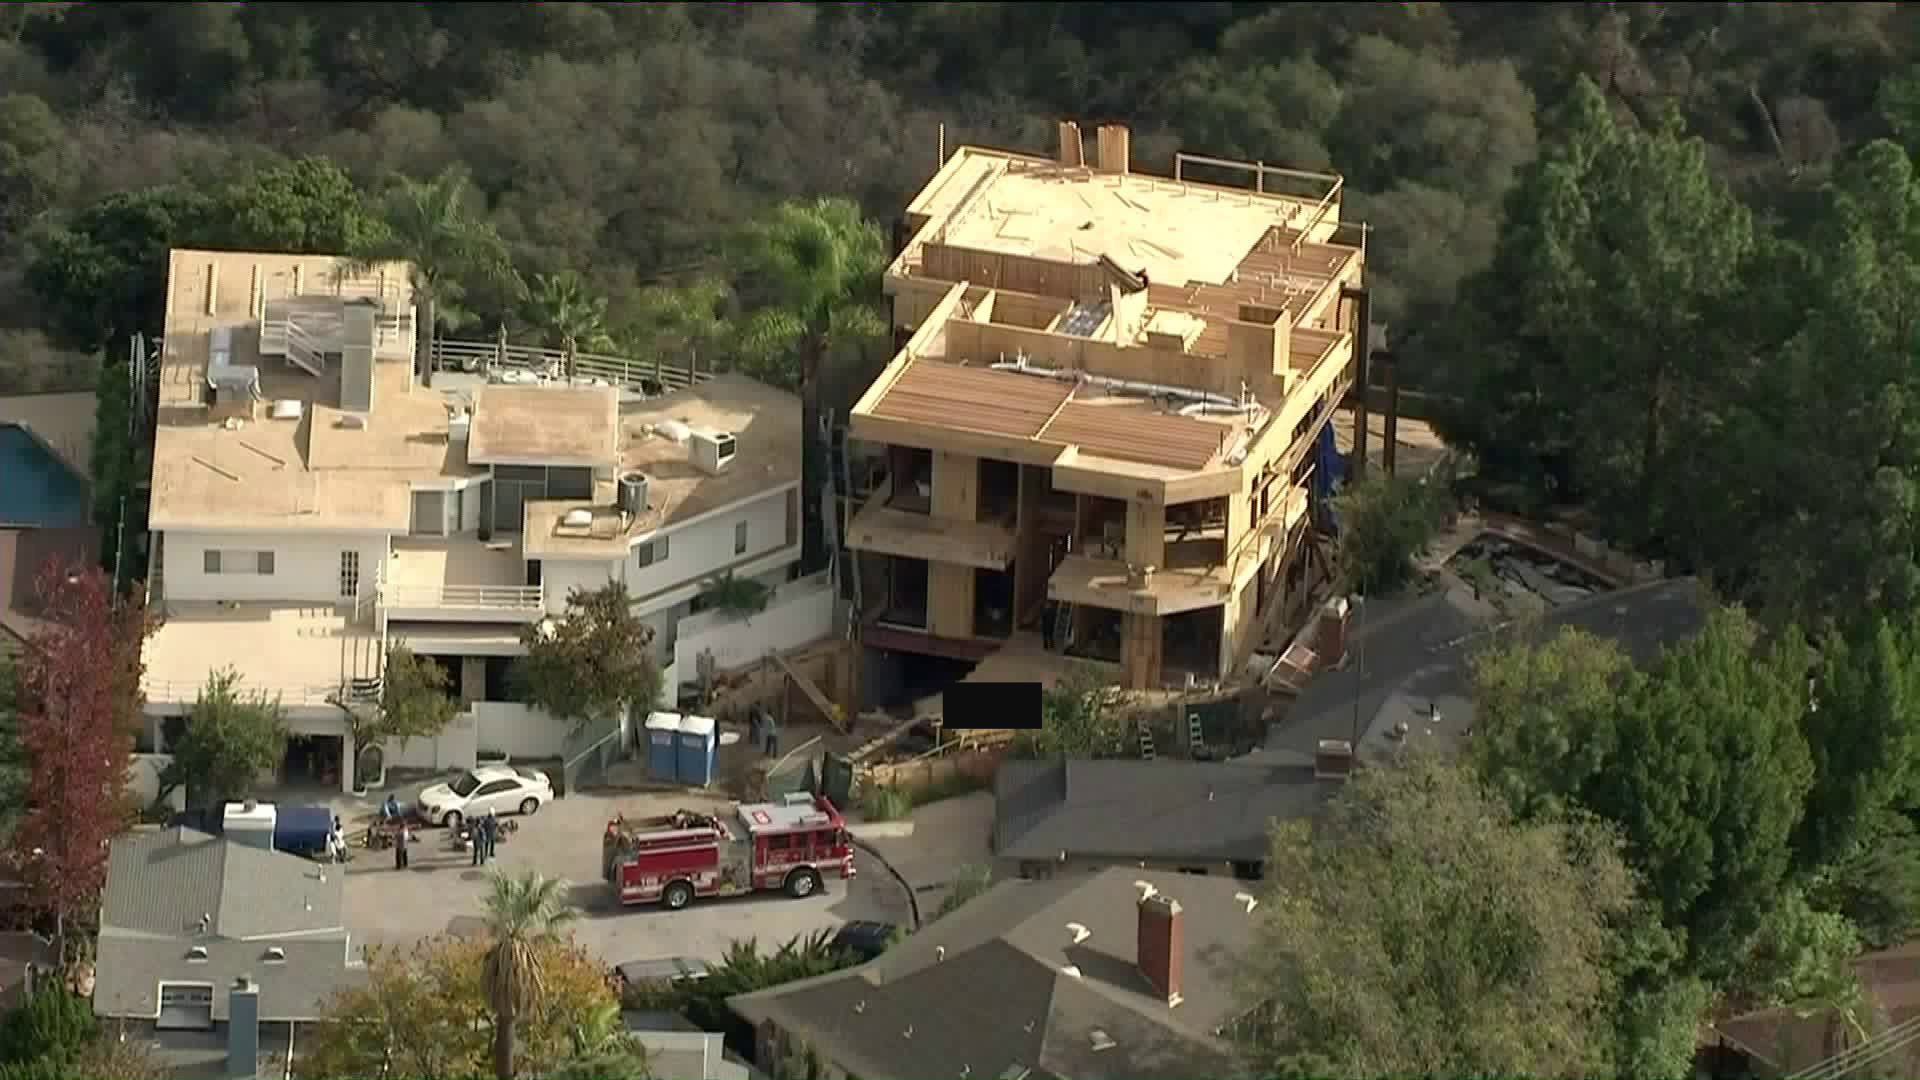 A worker died in an accident at a residential construction site in Bel Air on Dec. 17, 2018. (Credit: KTLA)